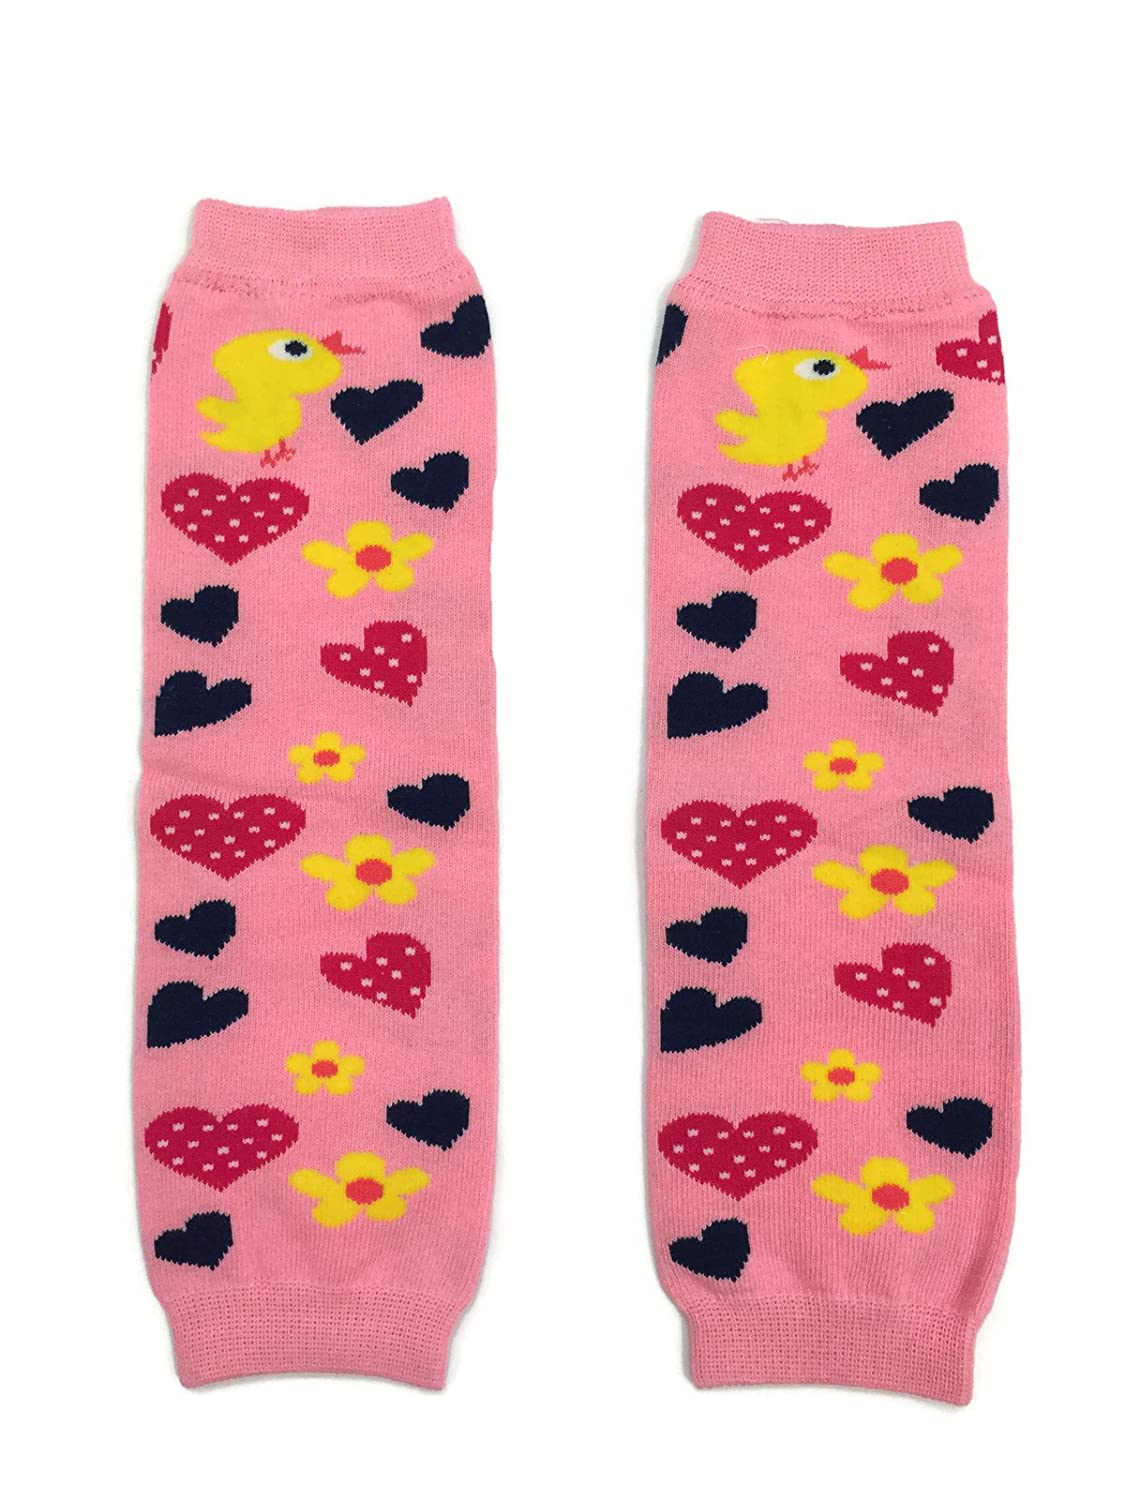 Rush Dance Valentines Day Love Hearts Baby//Toddler Leg Warmers